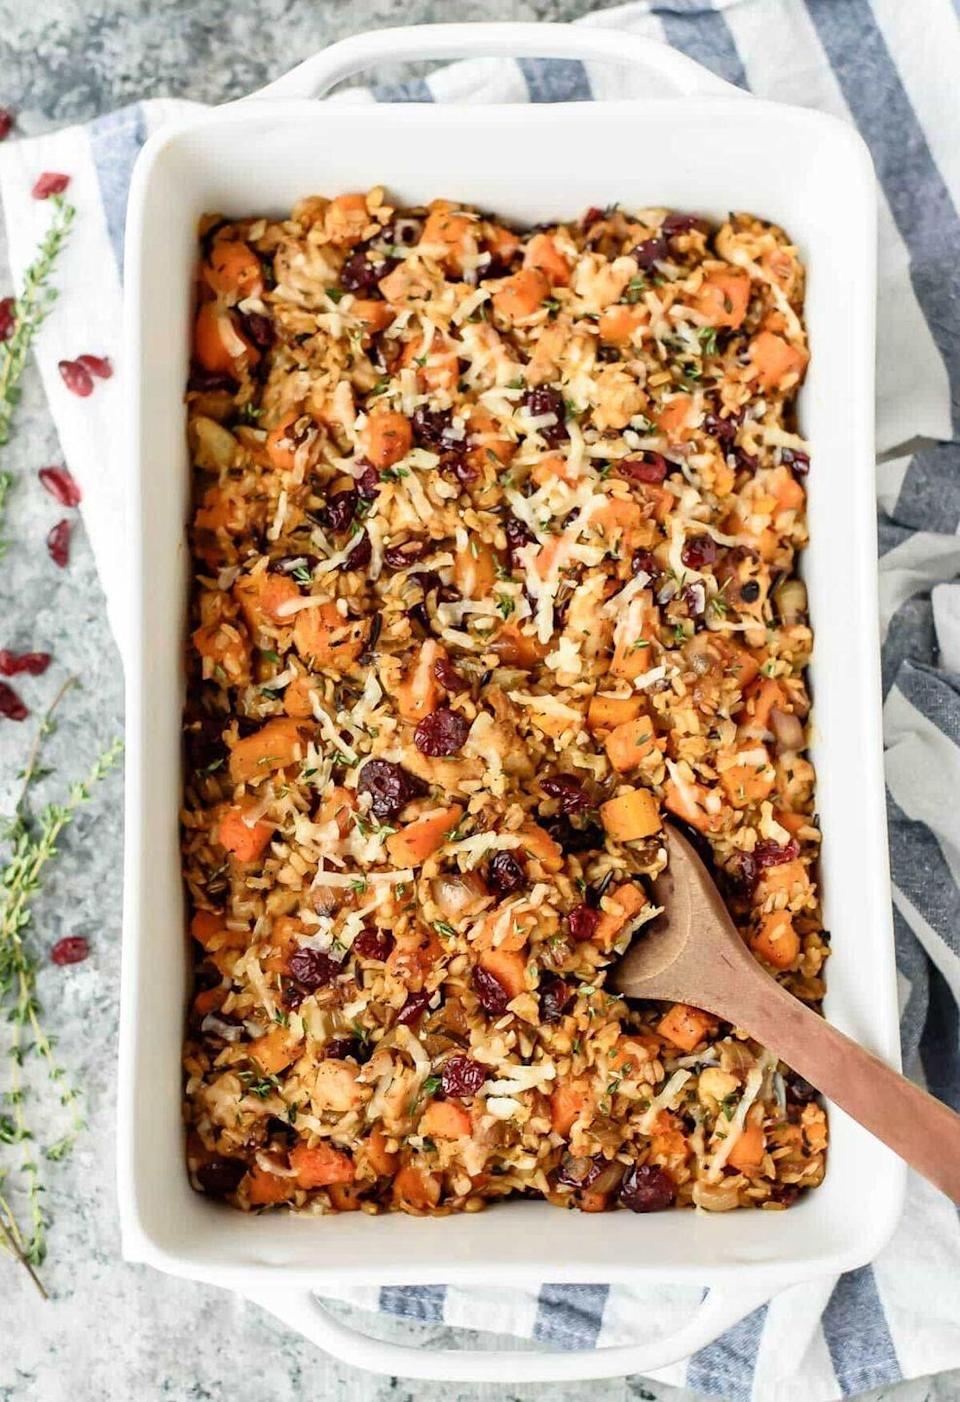 """<p>Try this upgraded chicken and rice recipe when you're craving a healthy but filling meal.</p><p><strong>Get the recipe at <a href=""""https://www.wellplated.com/chicken-and-wild-rice-casserole/"""" rel=""""nofollow noopener"""" target=""""_blank"""" data-ylk=""""slk:Well Plated by Erin"""" class=""""link rapid-noclick-resp"""">Well Plated by Erin</a>.</strong><br></p>"""